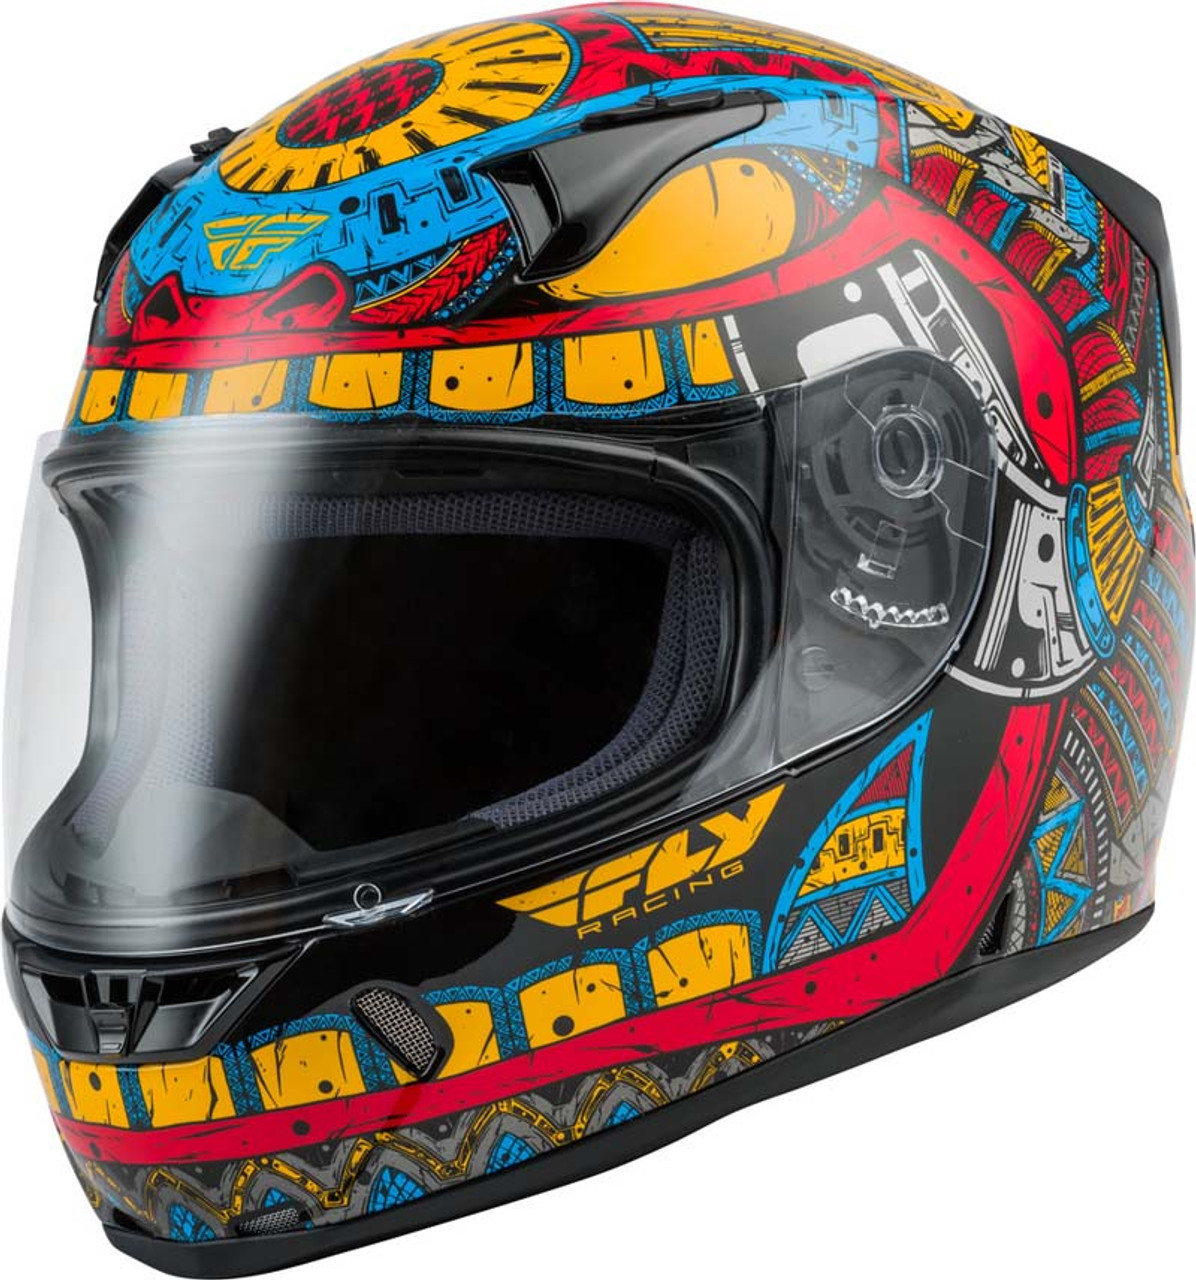 Size//Color Fly Racing Ink N Needle Revolt FS Full Face Street Motorcycle Helmet